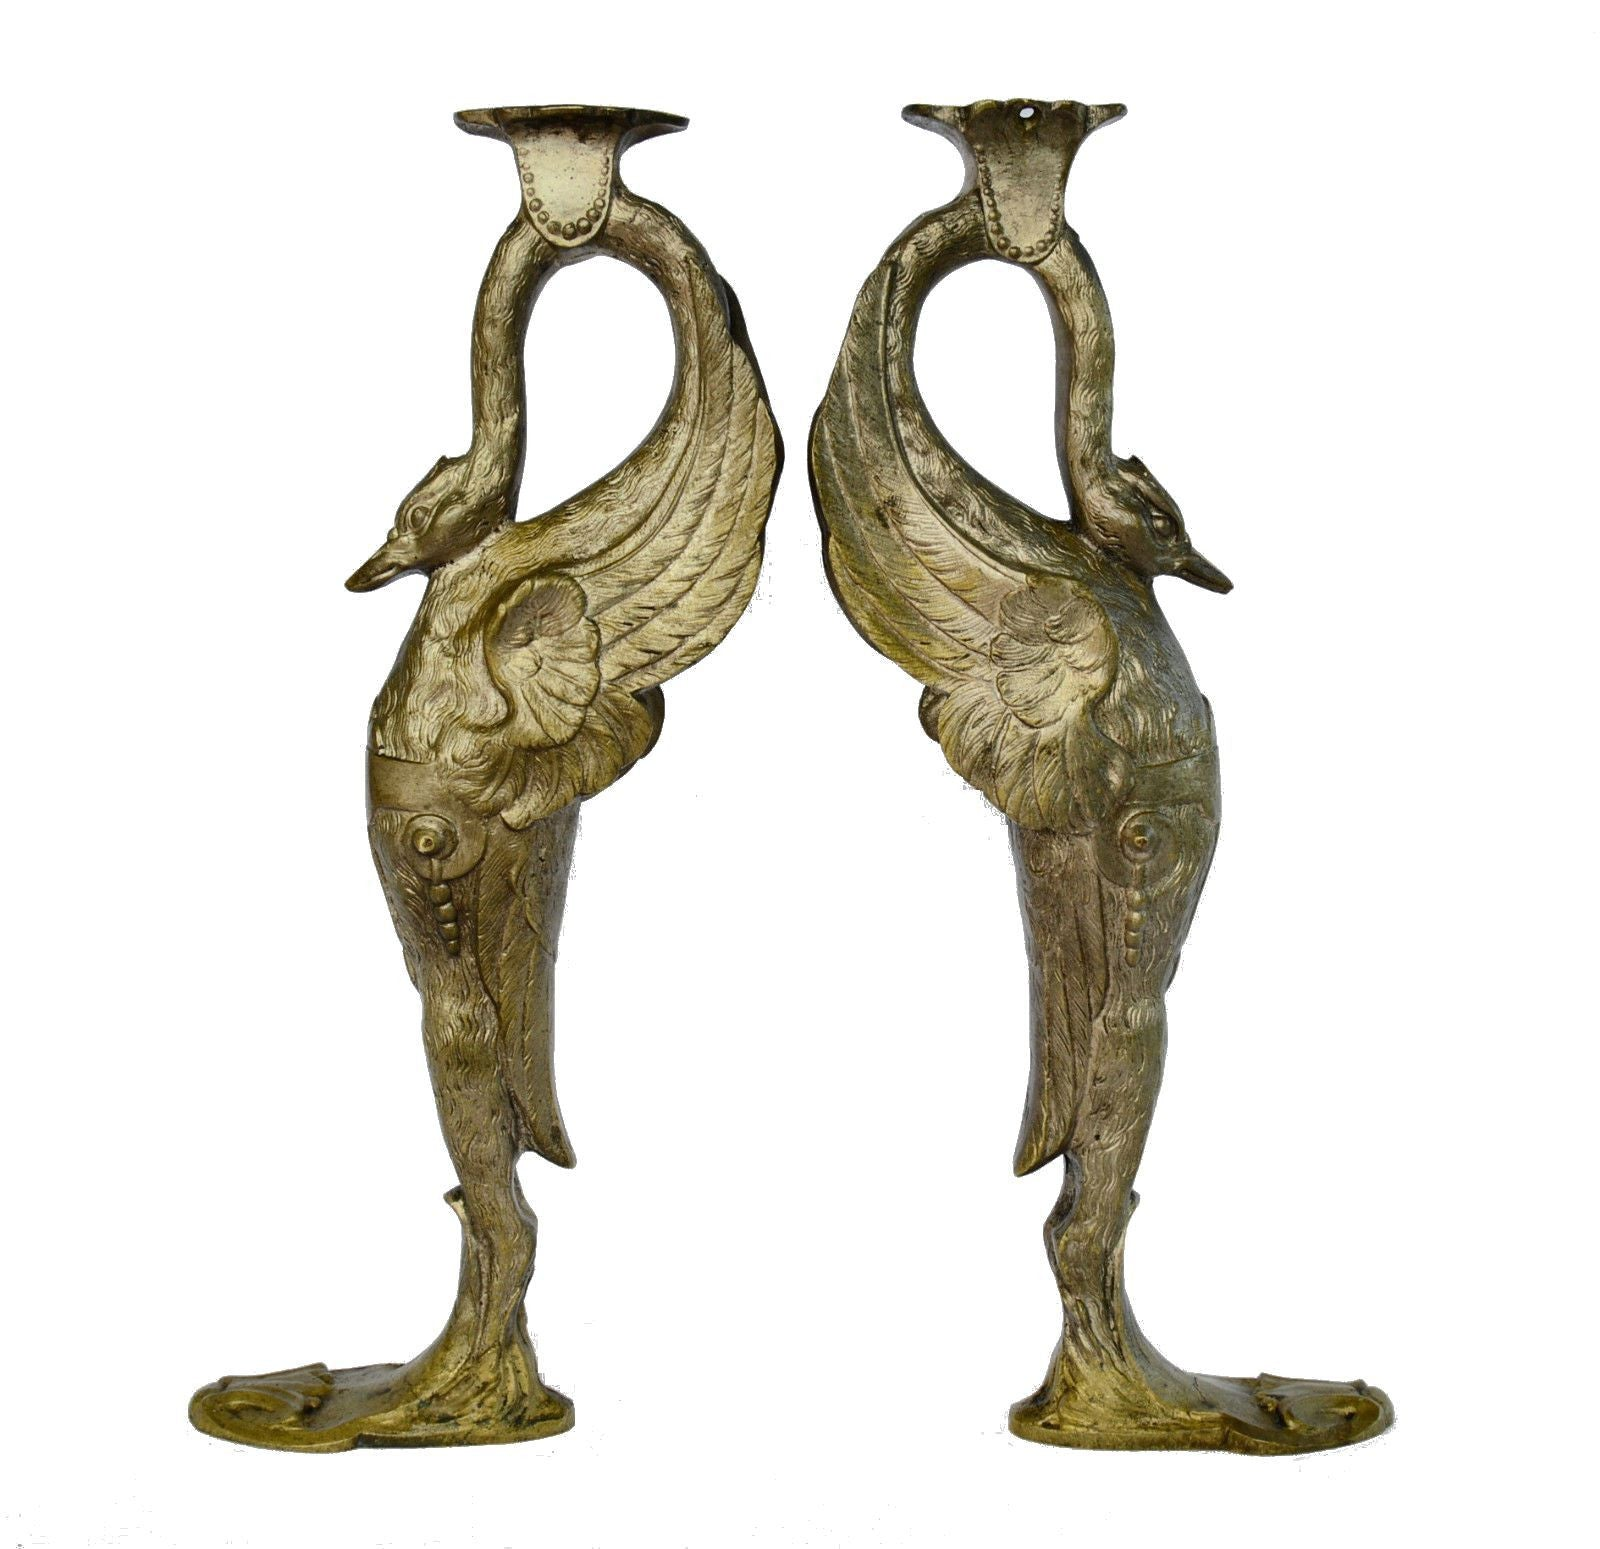 Swan Furniture Support - Charmantiques